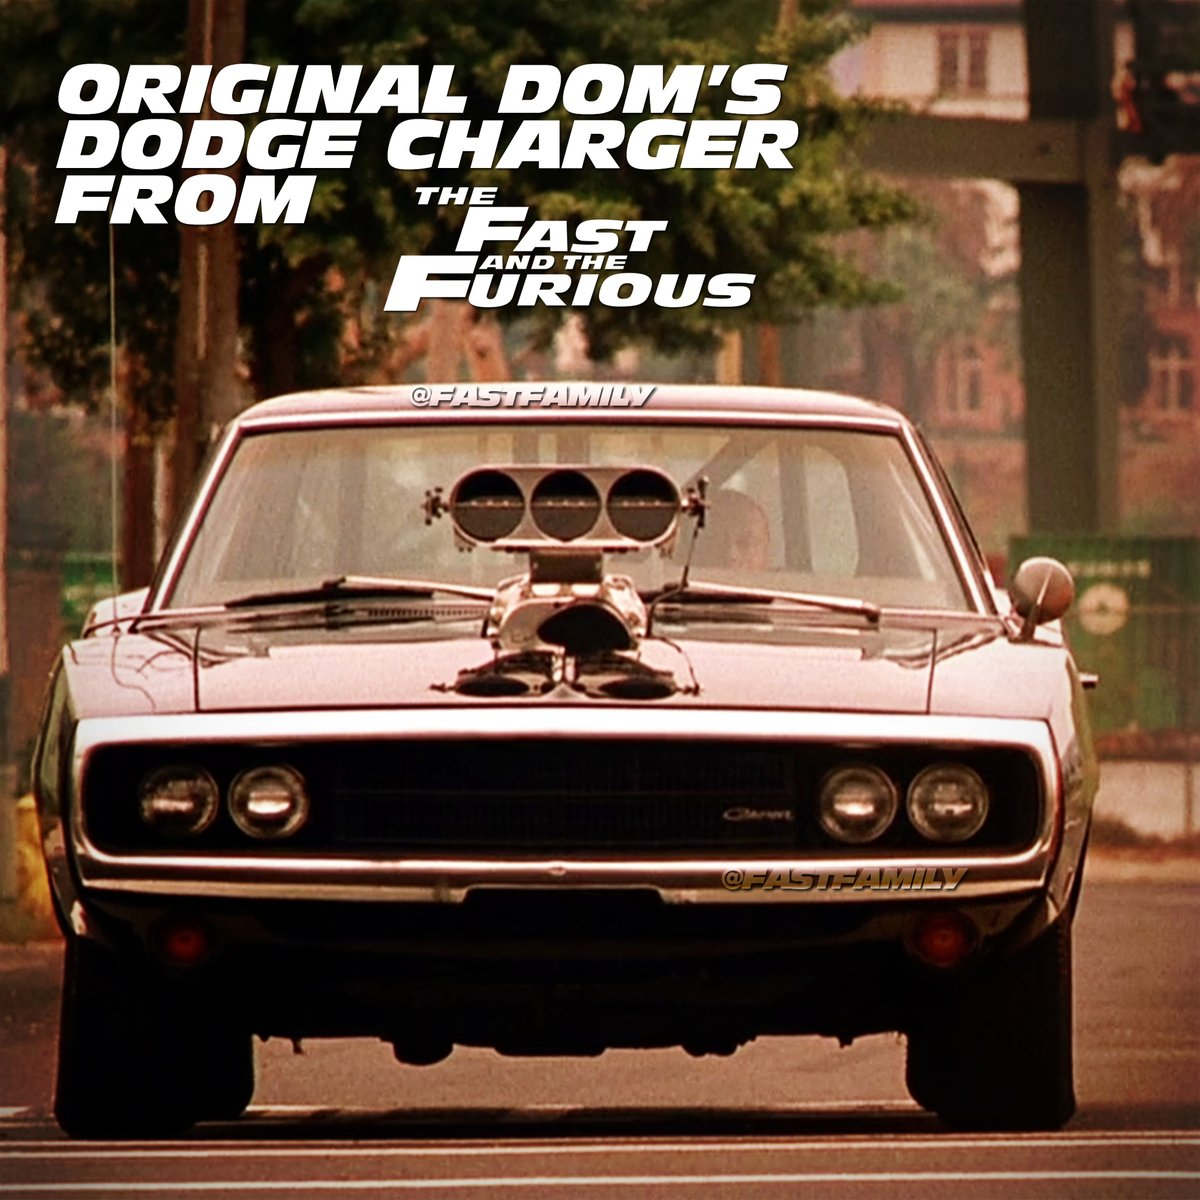 Bring home the action with @LEGO_Group's re-creation of Dom's iconic 1970 @Dodge Charger R/T from the very beginning of @TheFastSaga — available now! #FastAndFurious #F9 https://t.co/9bFKhEuoEy